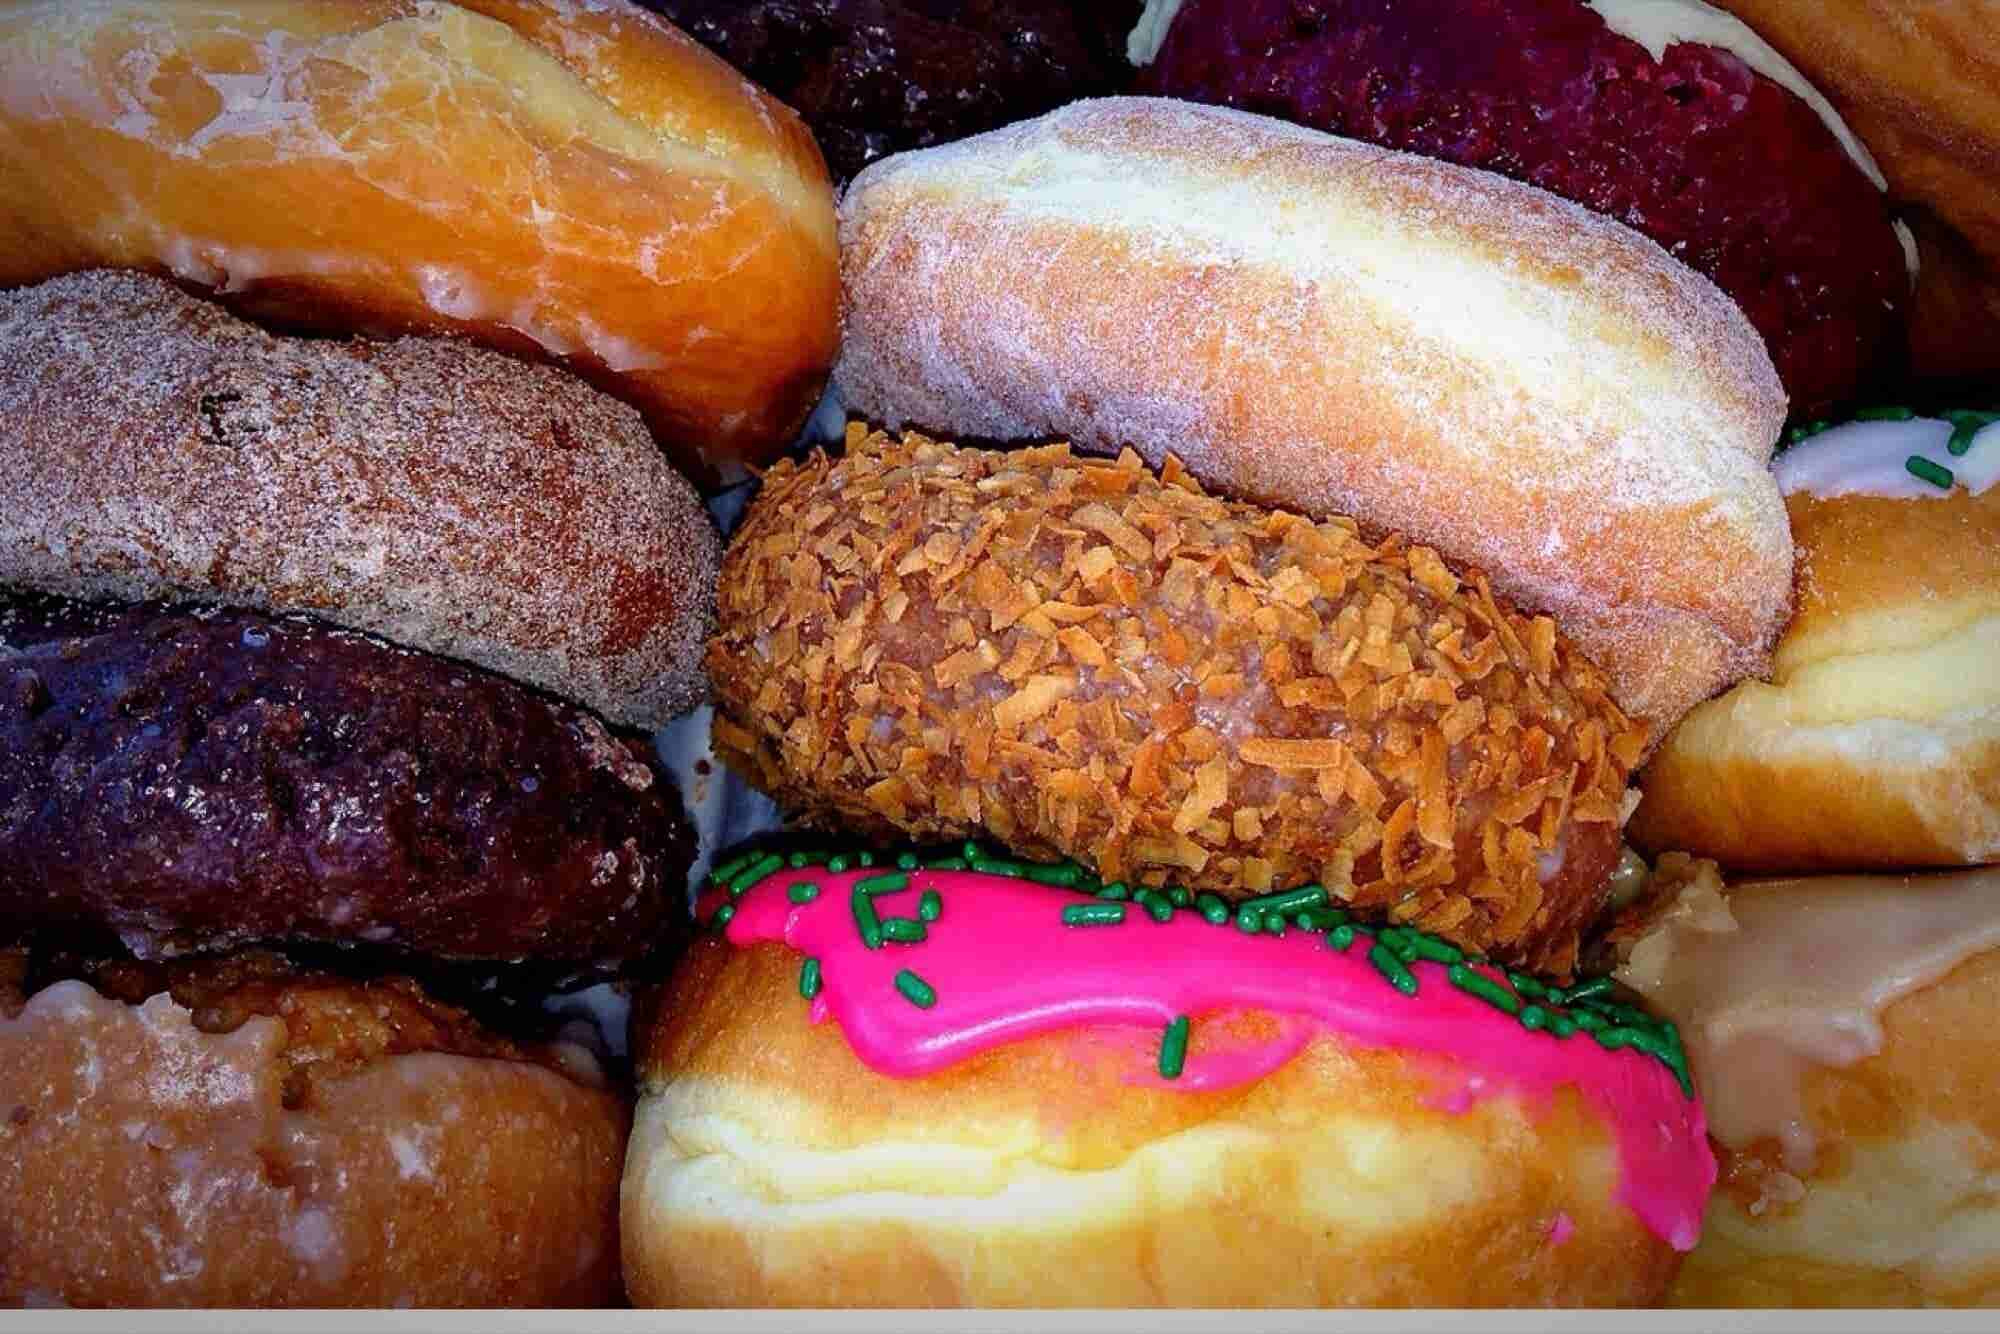 New Research Shows How the Liver Fights Off Sugar Cravings